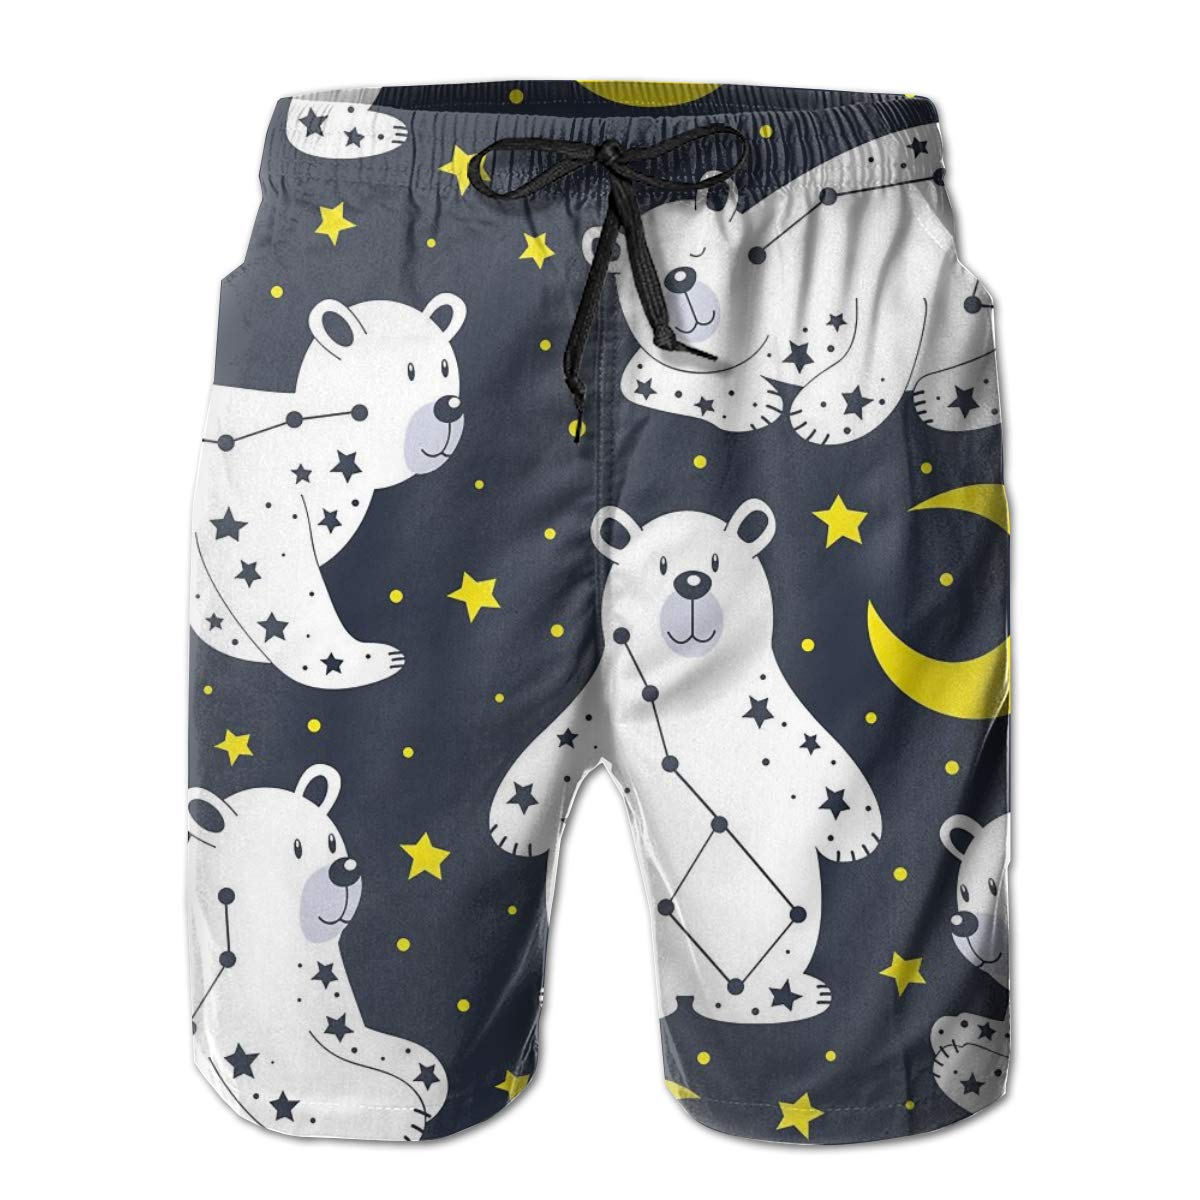 SARA NELL Mens Shorts White Bear and Constellation Quick Dry Swim Trunks Beach Board Shorts